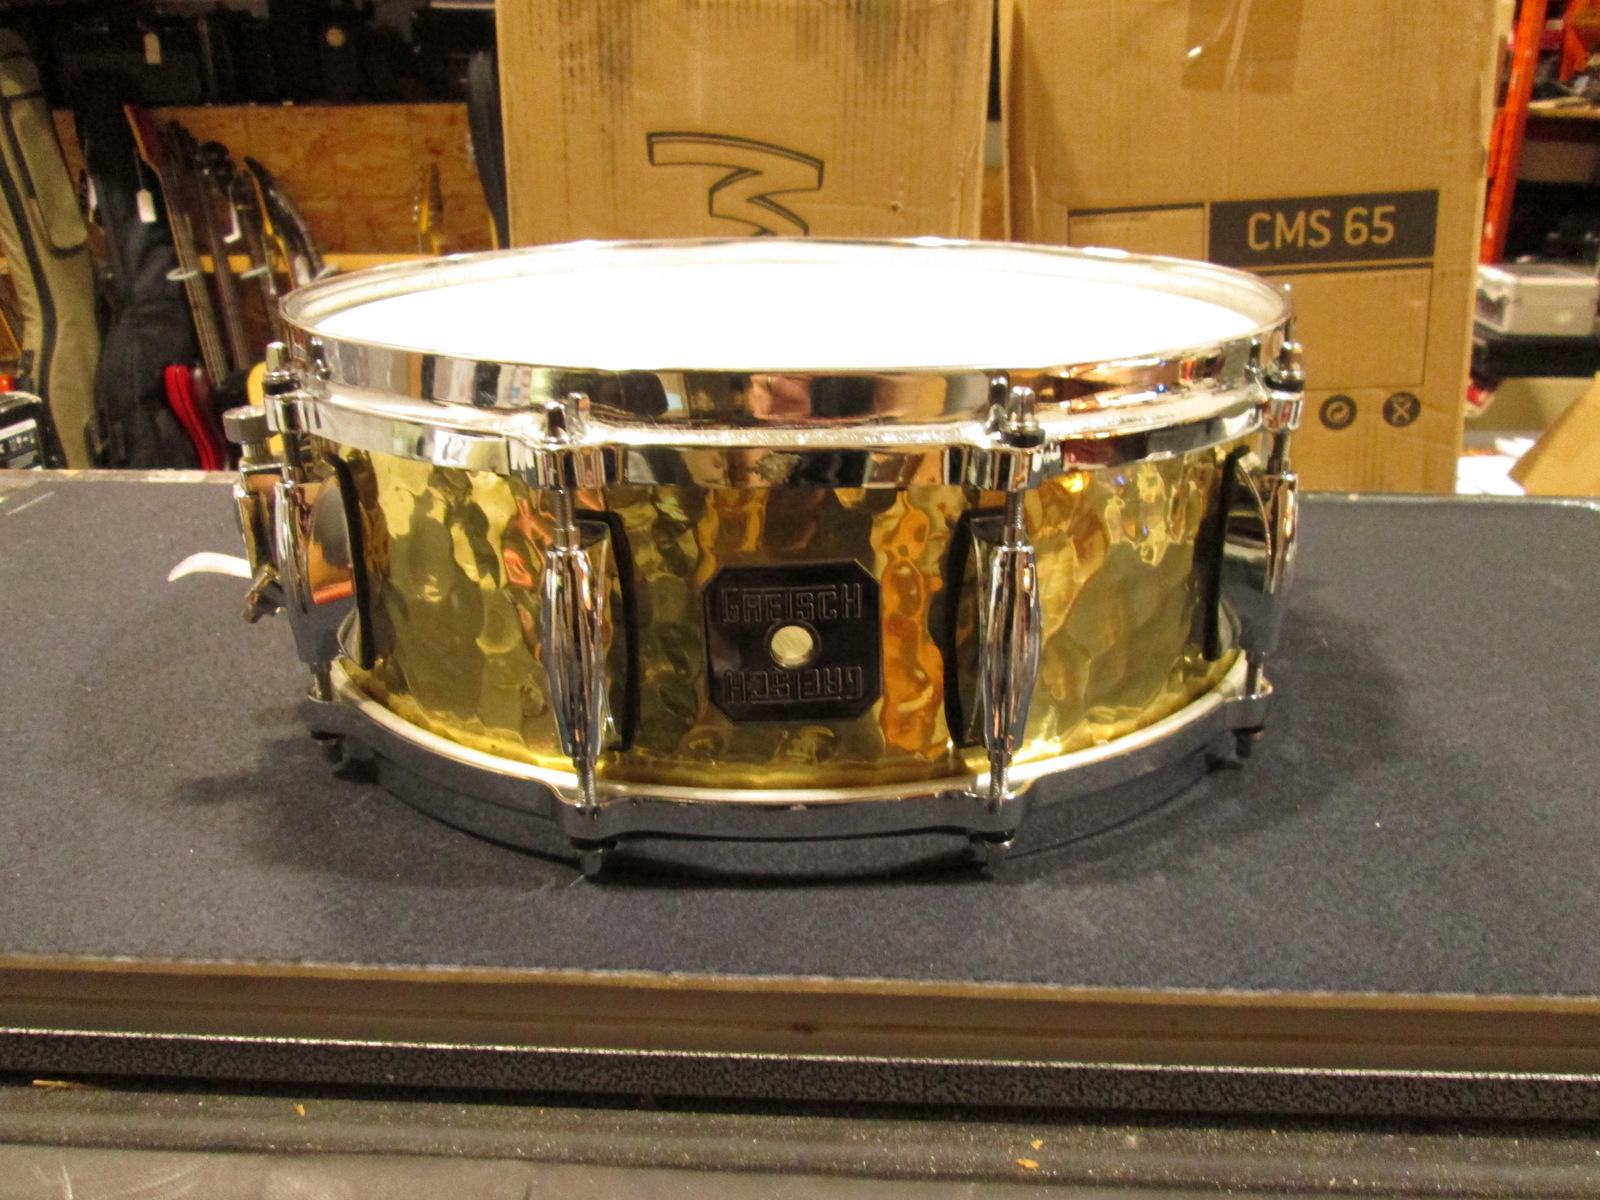 GRETSCH HAND-HAMMERED BRASS SNARE DRUM 14